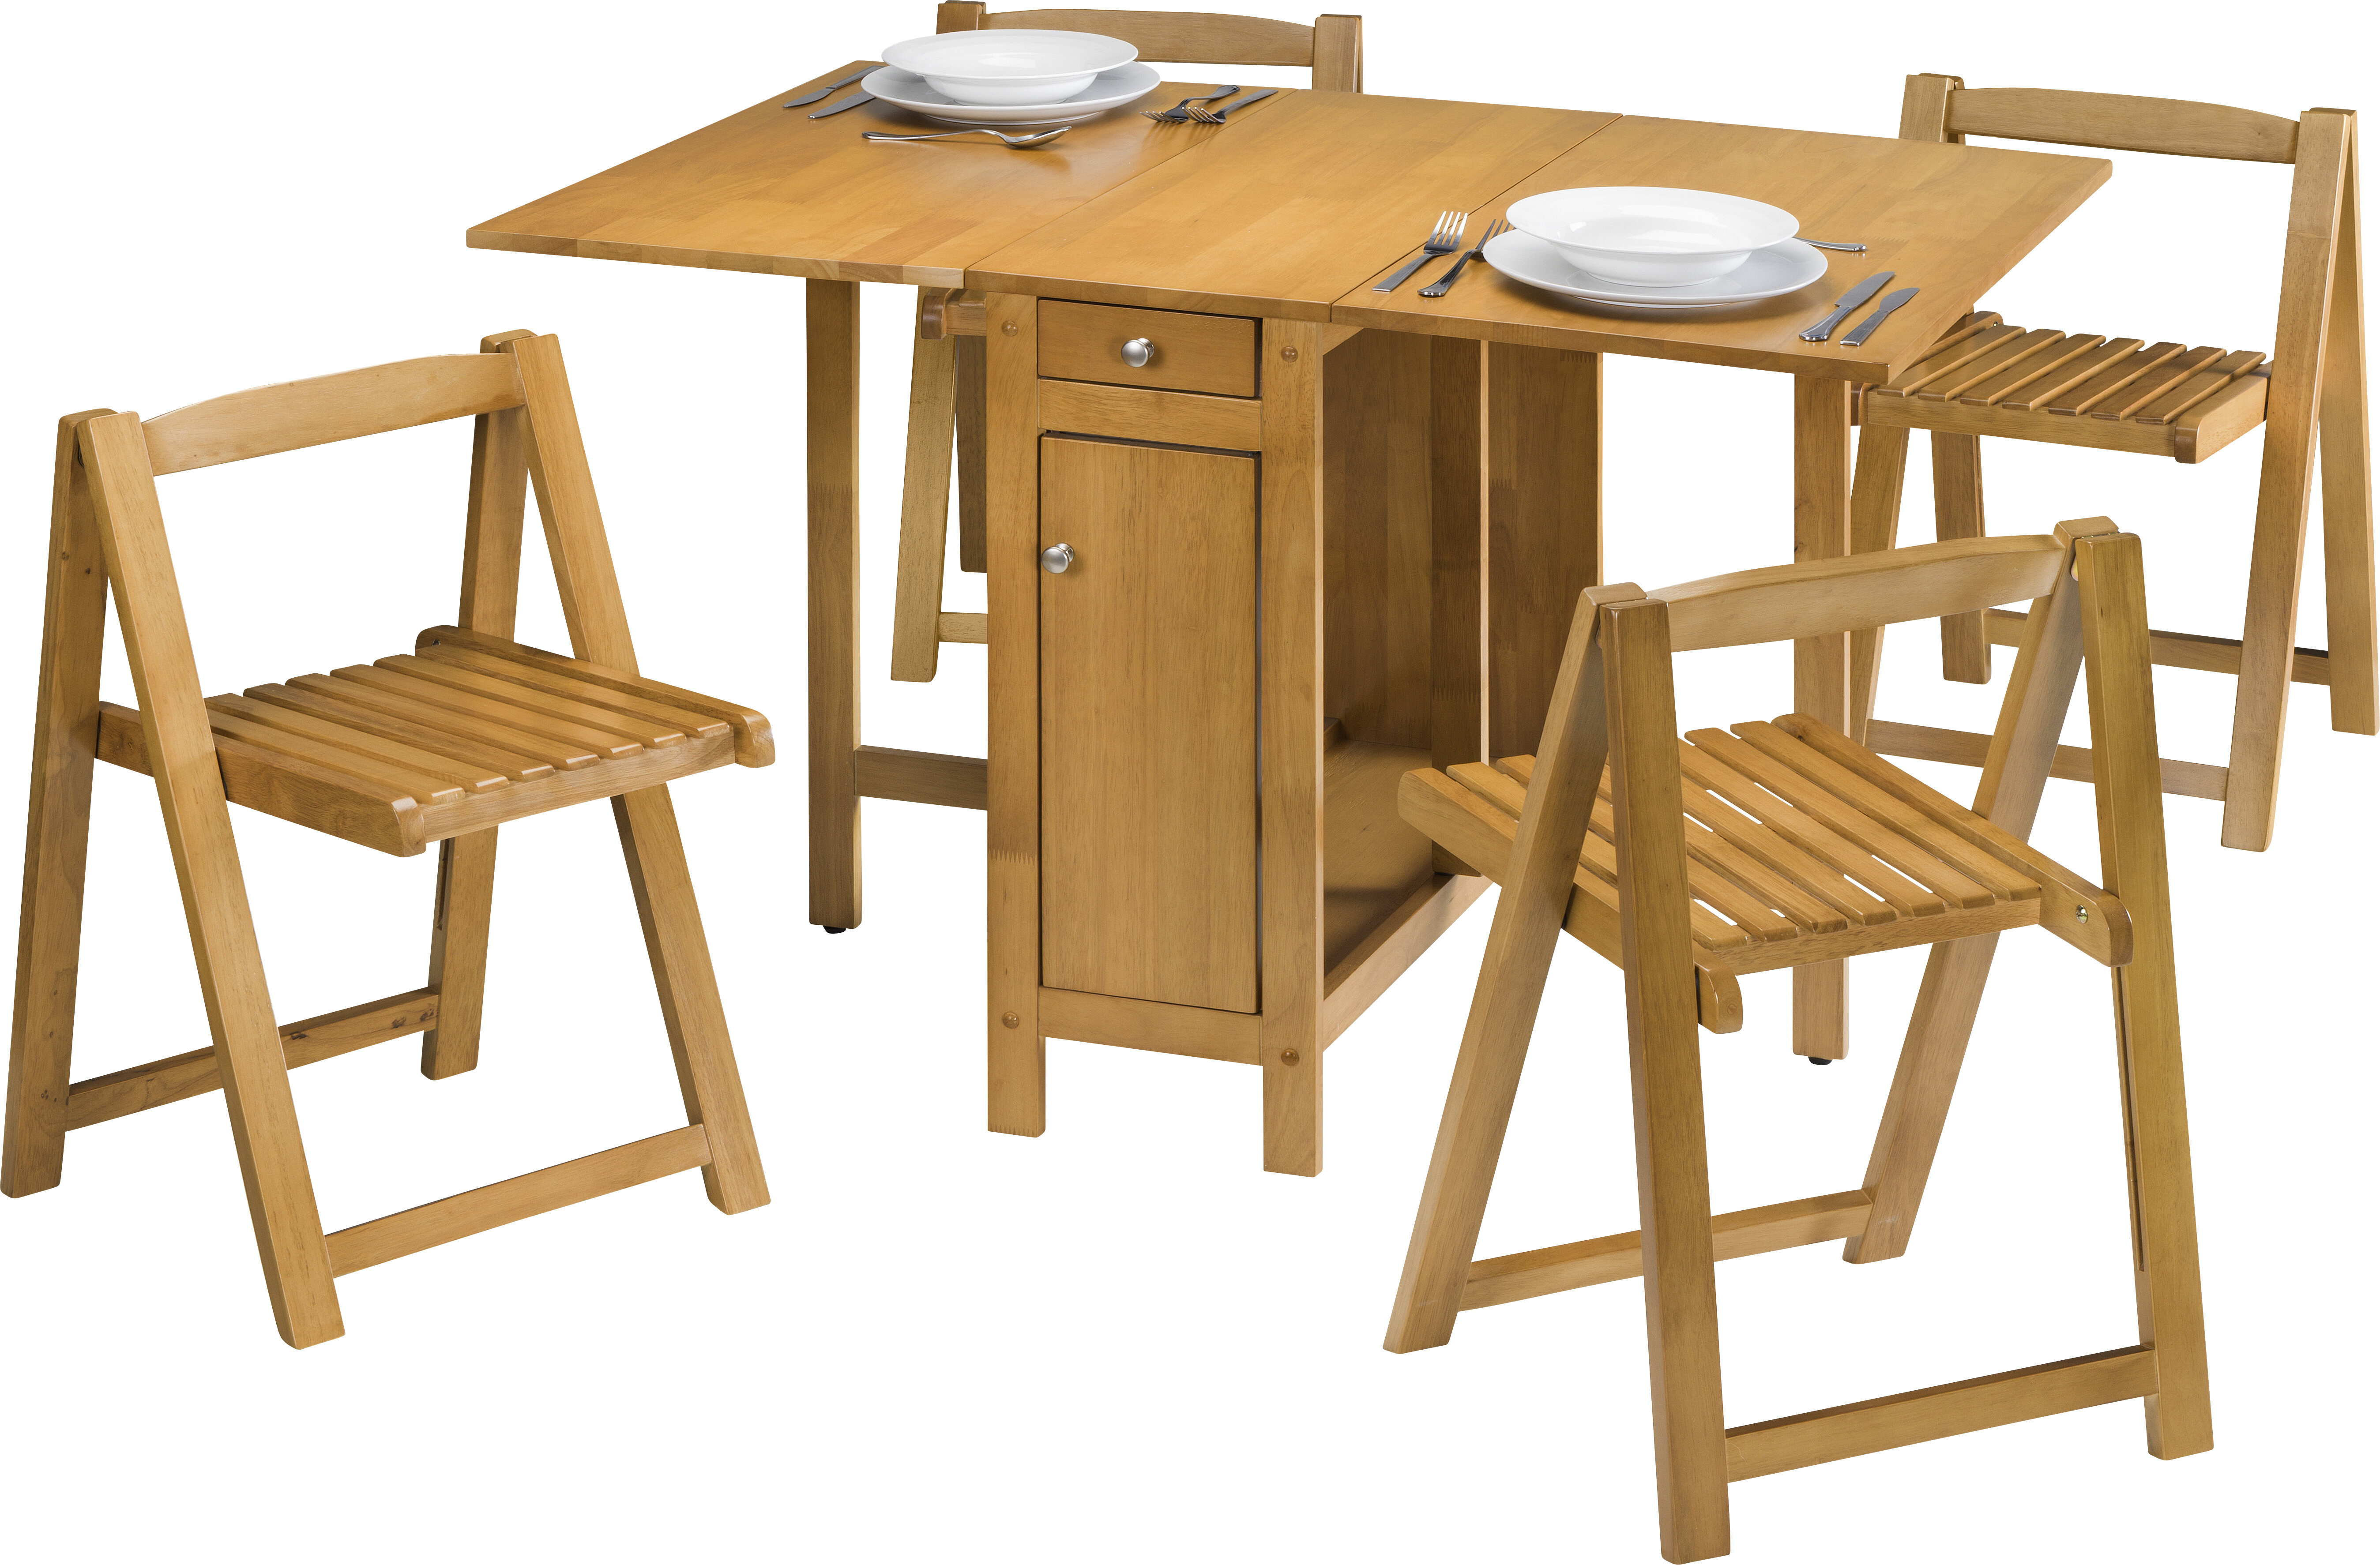 August Grove Alfreda Folding Dining Set with 4 Chairs & Reviews